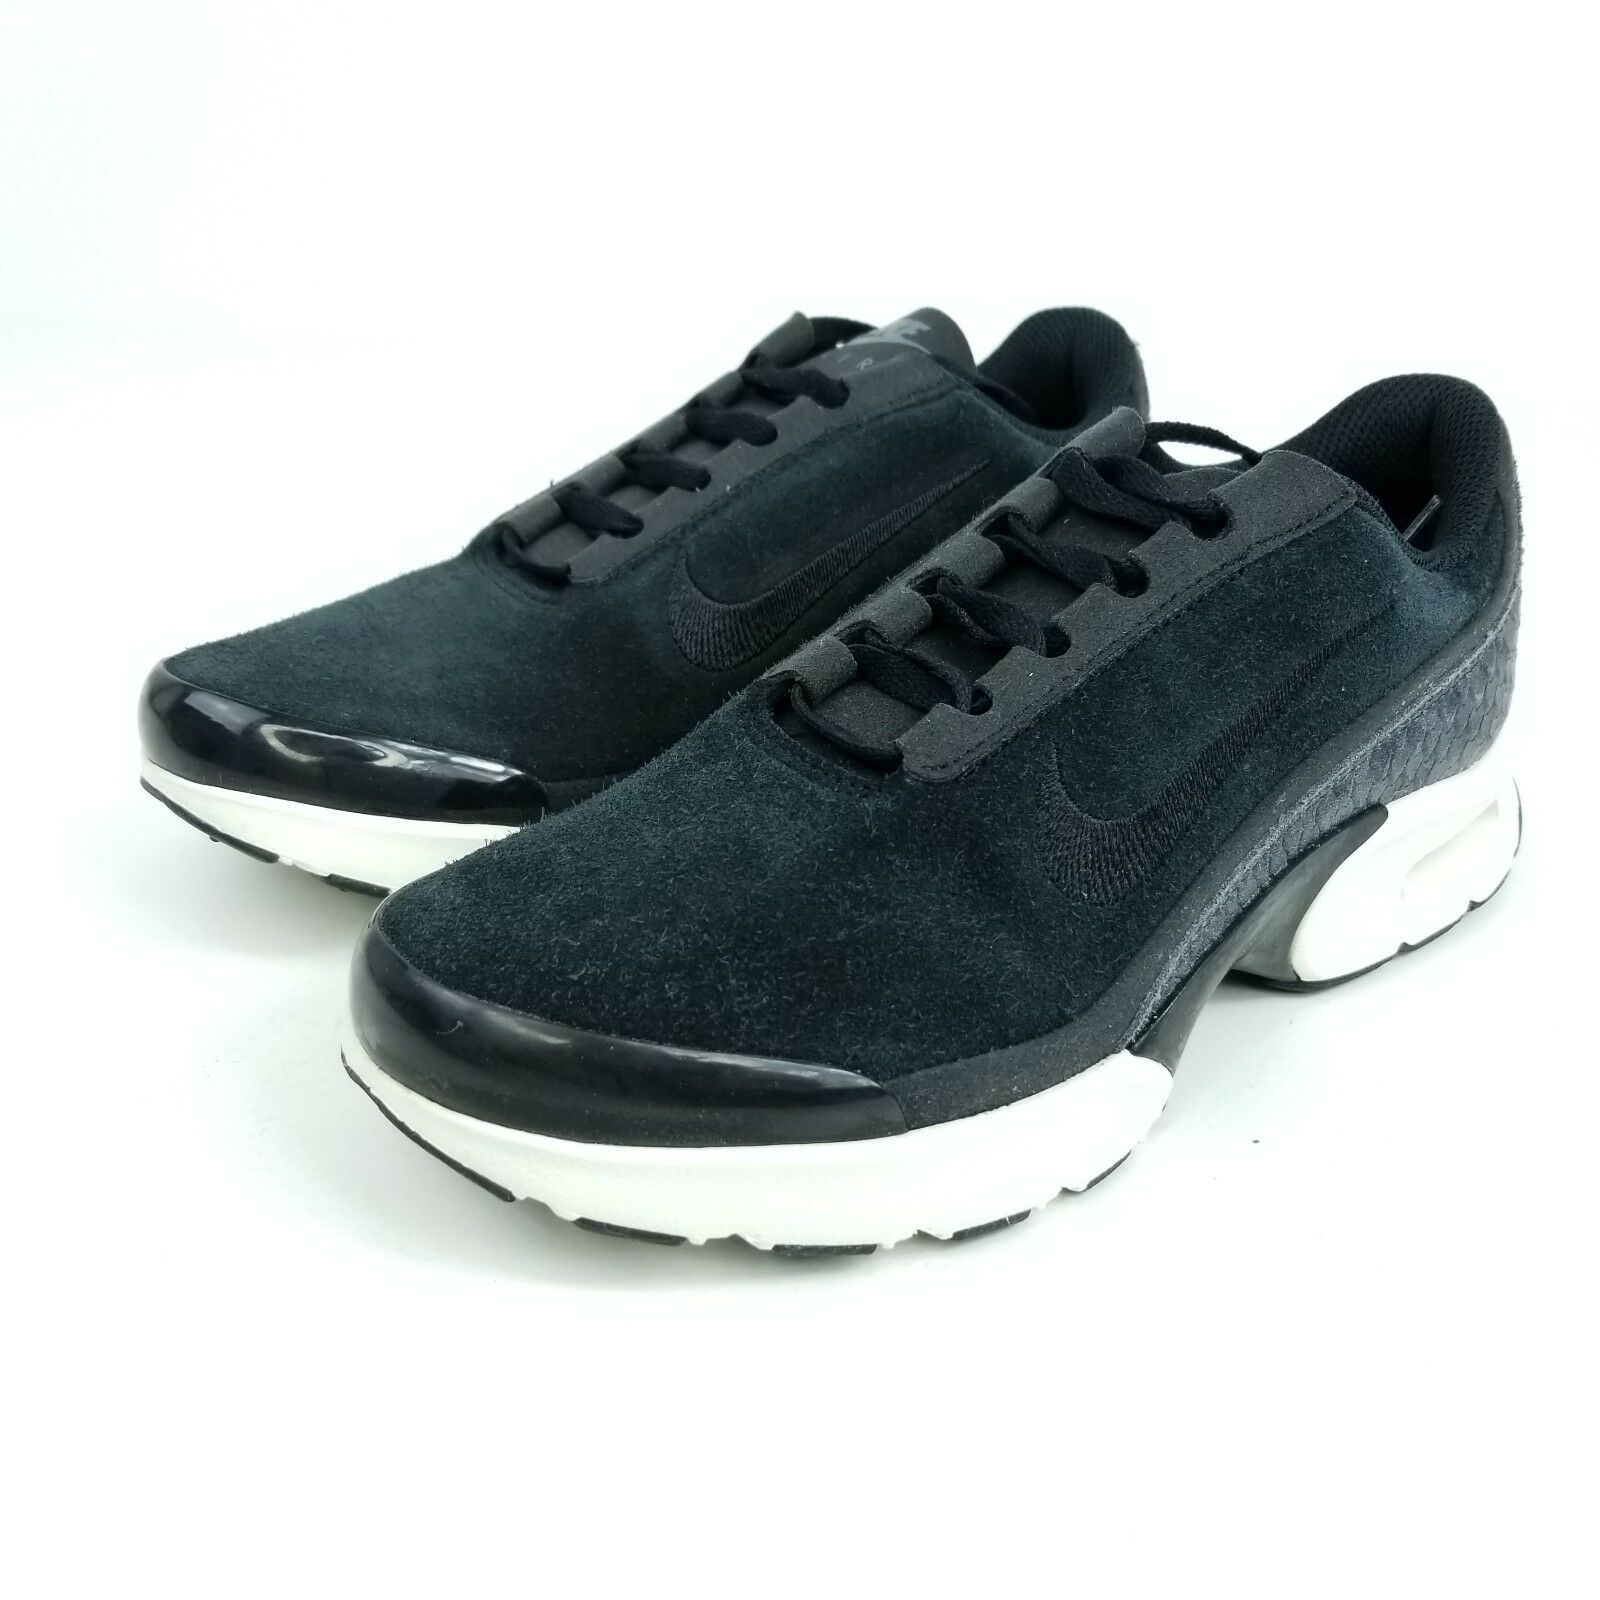 NIKE Air Max Jewell PRM TXT Womens Sz 10.5 Shoes Black 917672 002 best-selling model of the brand